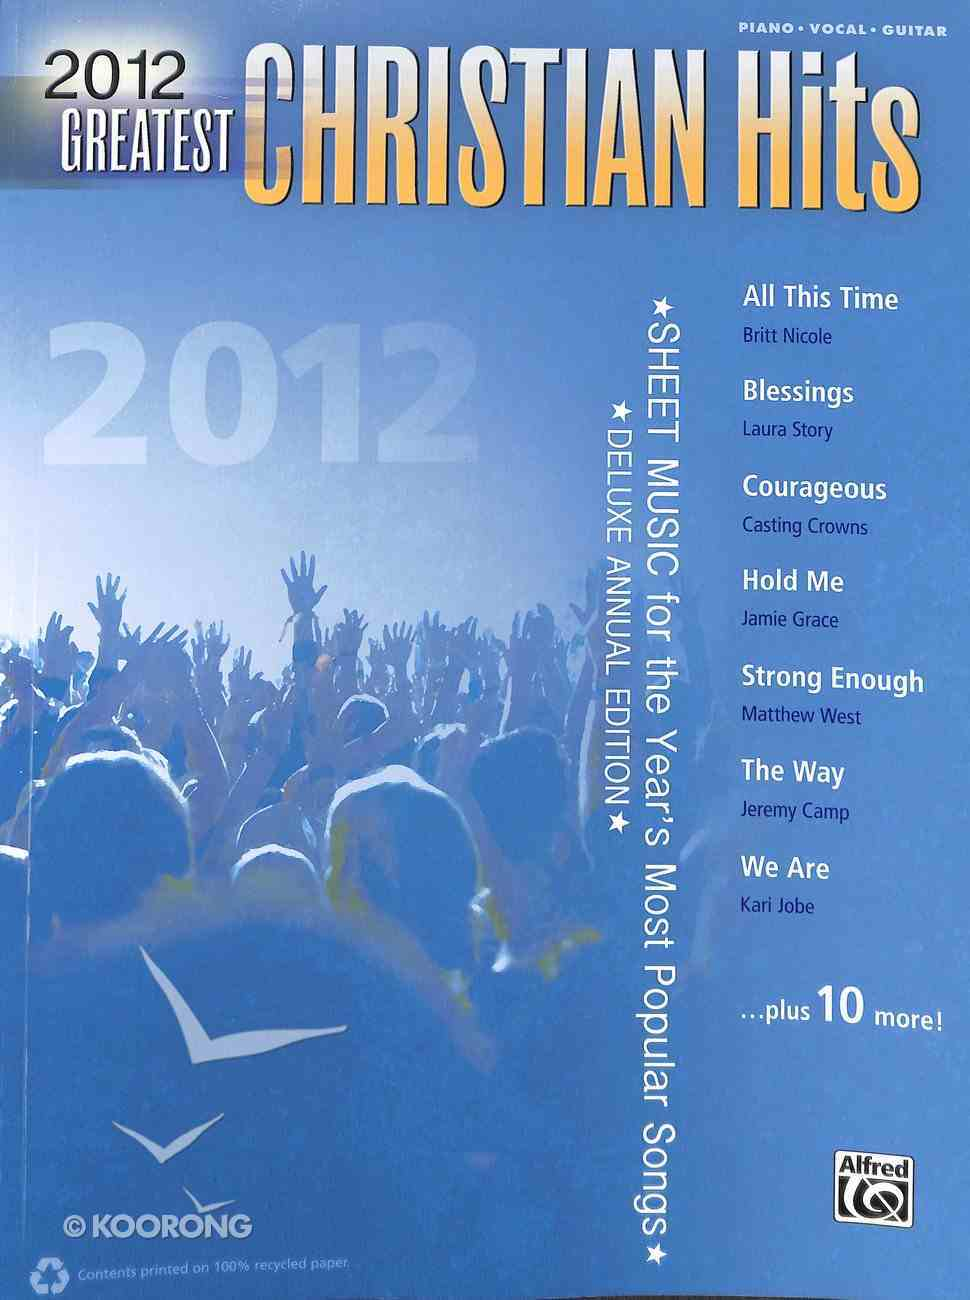 2012 Greatest Christian Hits: Sheet Music For the Year's Most Popular Songs (Piano/Vocal/Guitar) (Music Book) Paperback